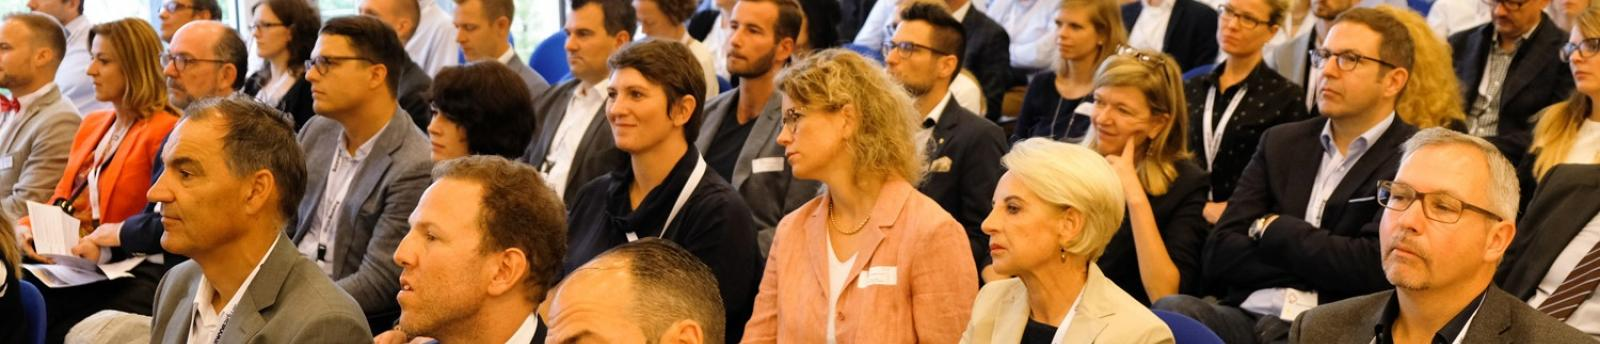 Swiss Innovation Day Hotel und Gastronomie Innovationen SHS Academy 2